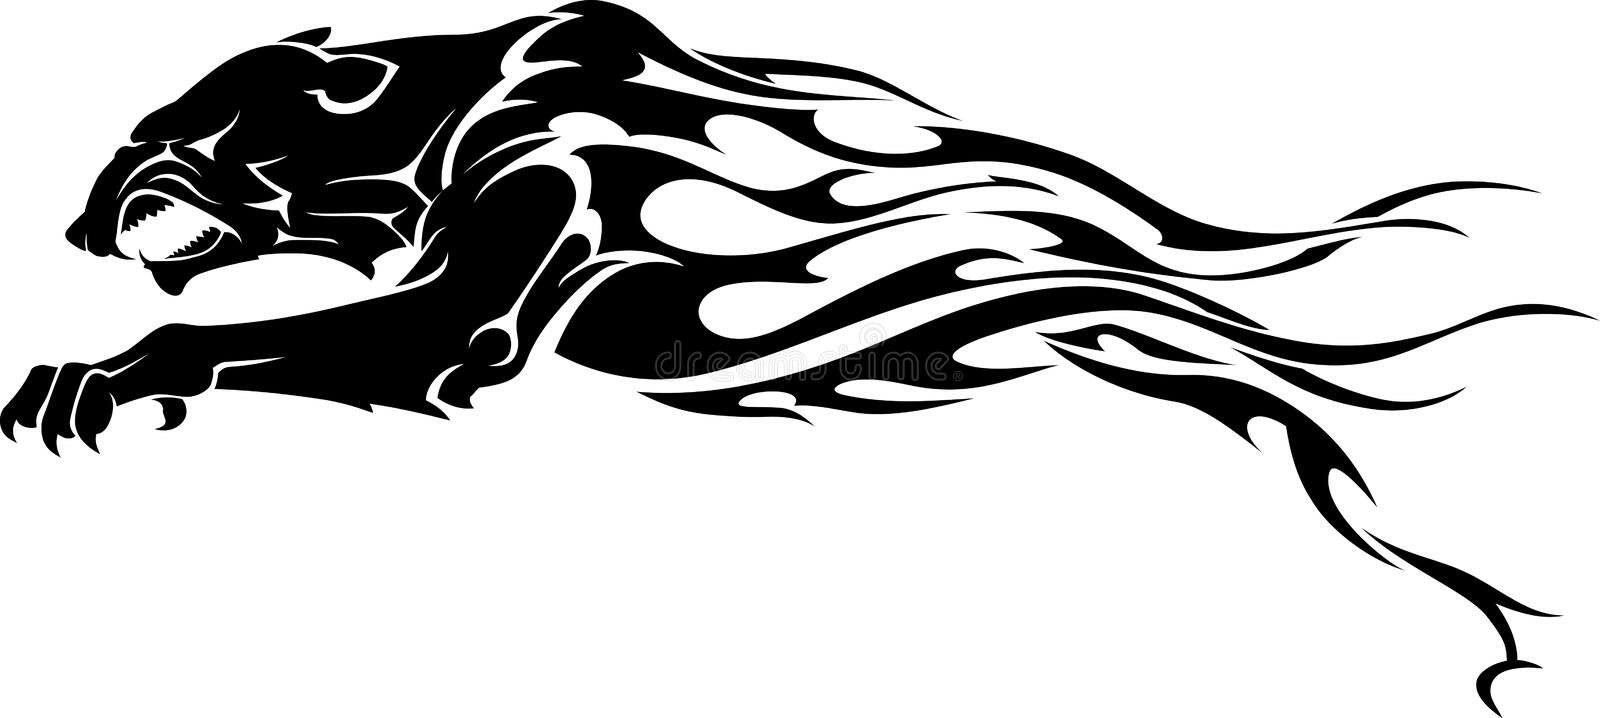 Panther Flame Tattoo royalty free illustration